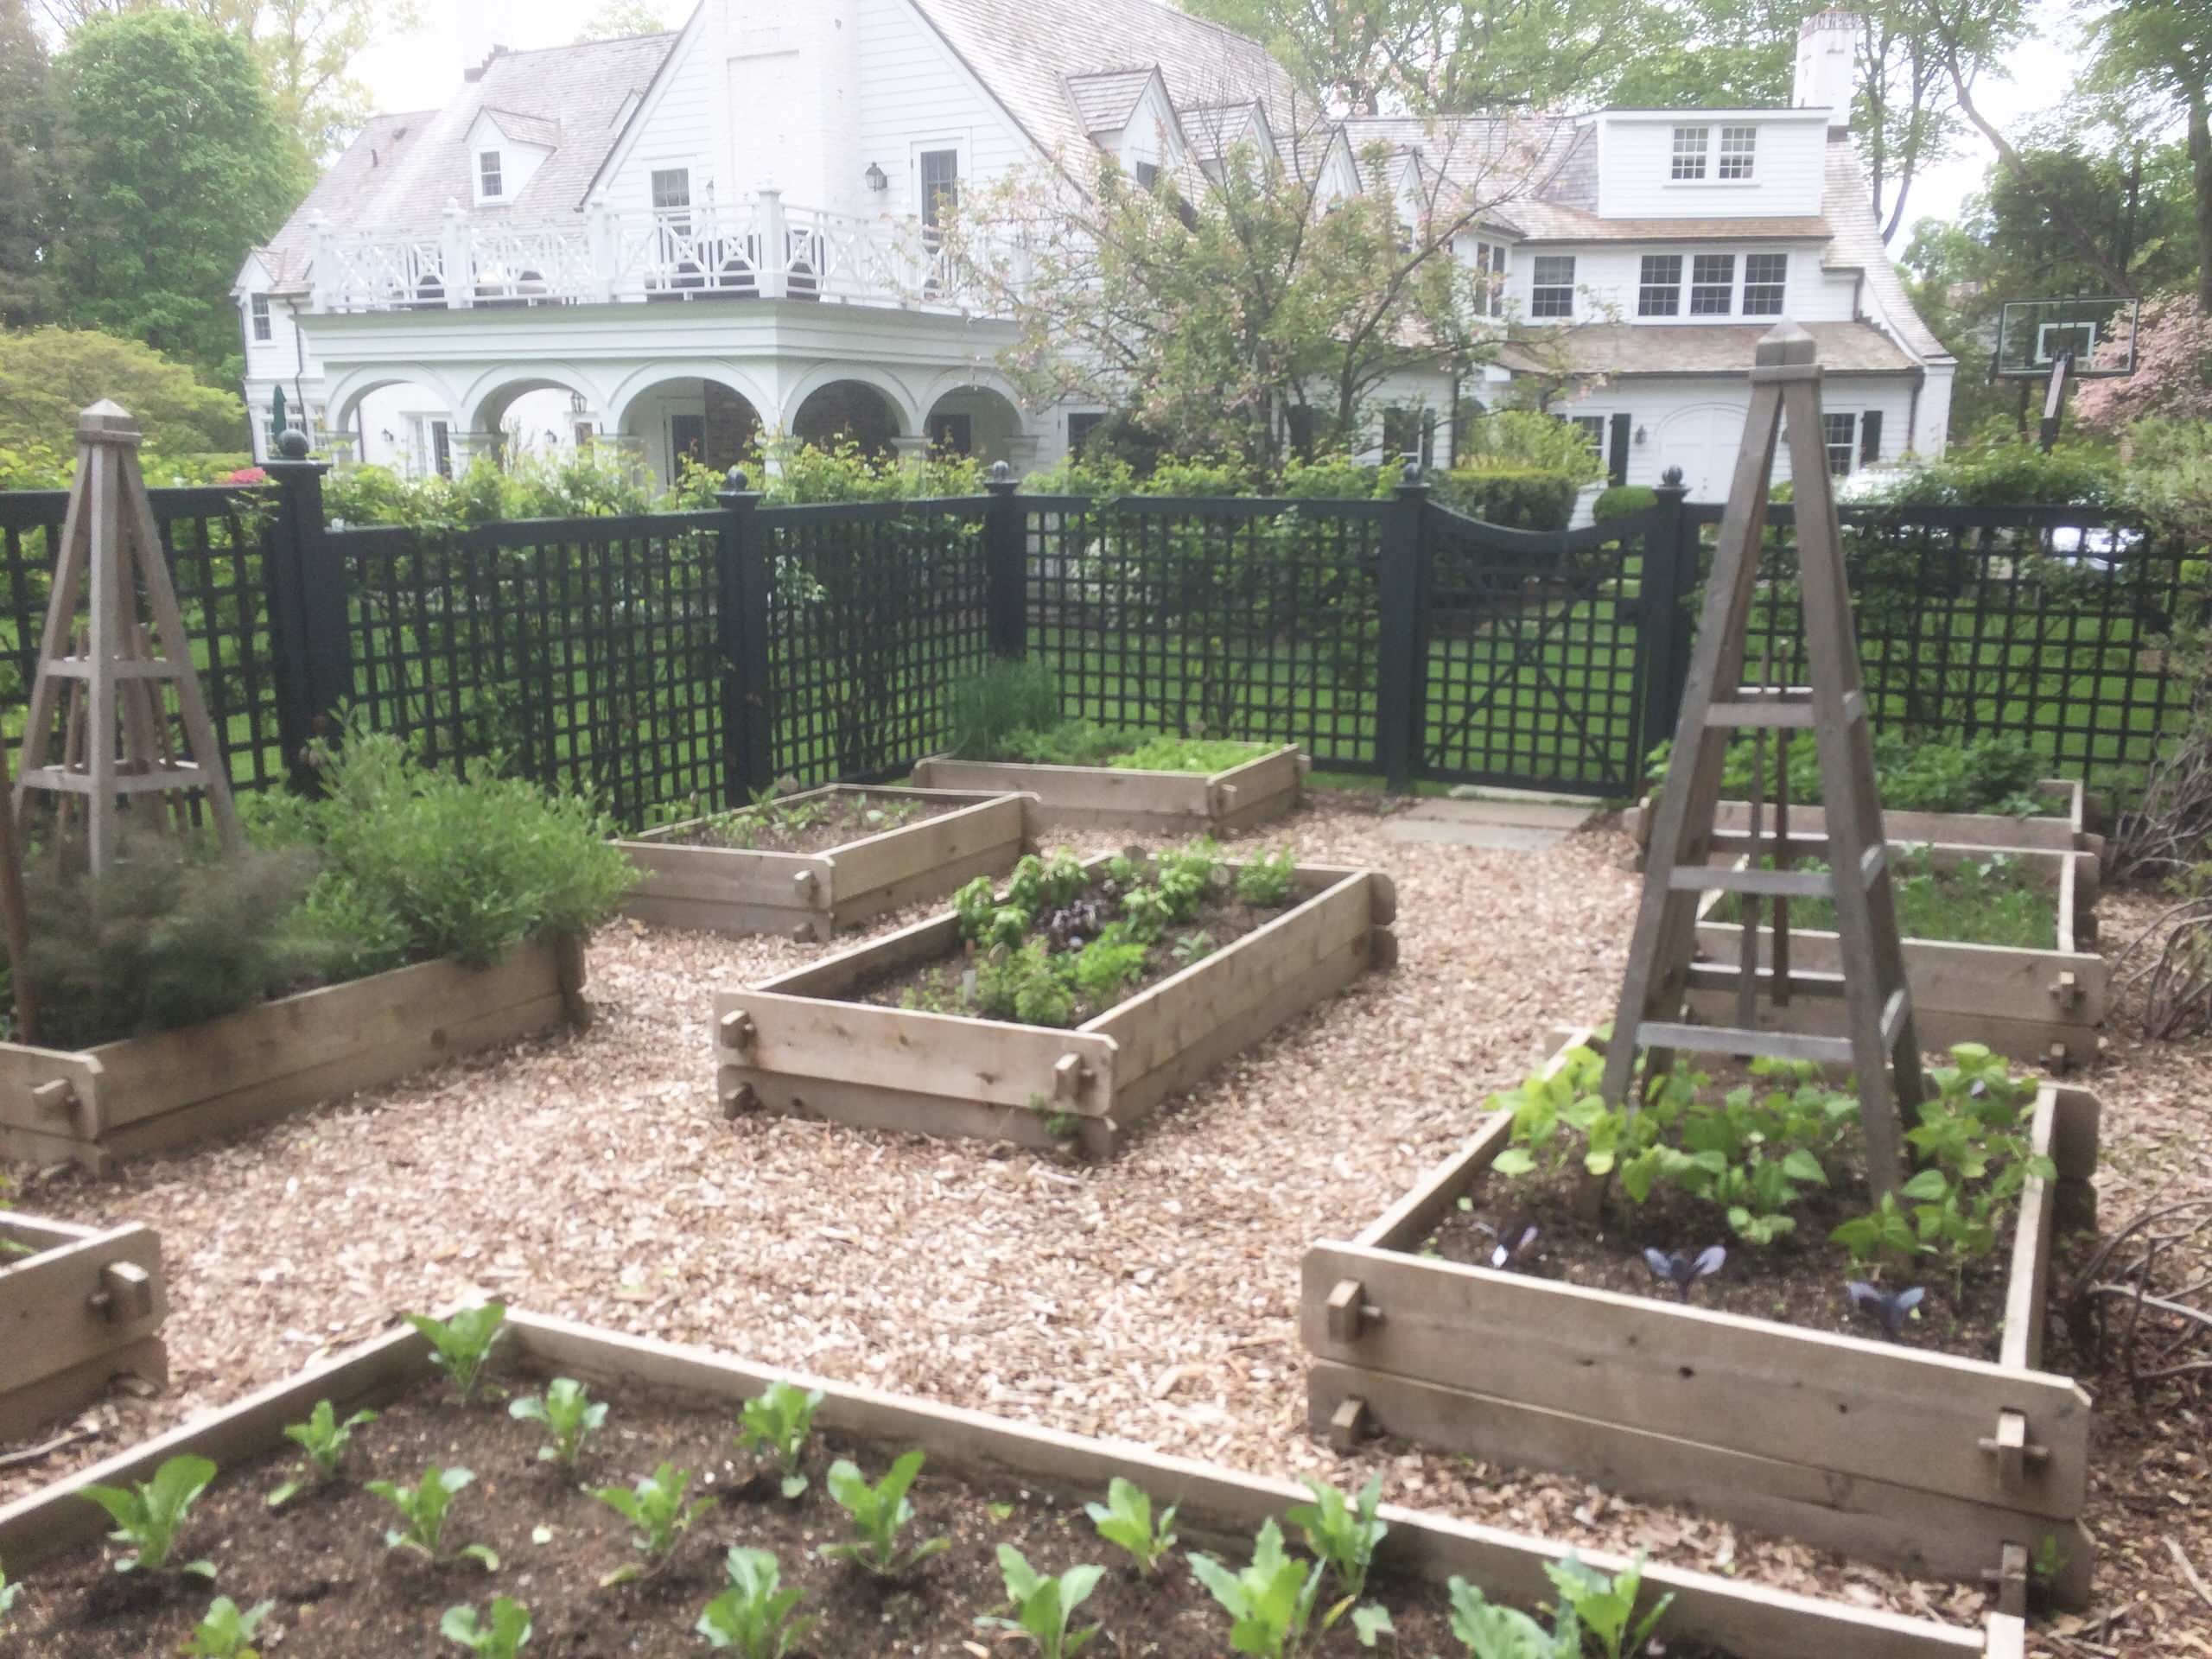 Vegetable Garden - Designed, Built and Maintained by Peter Atkins and Associates, LLC